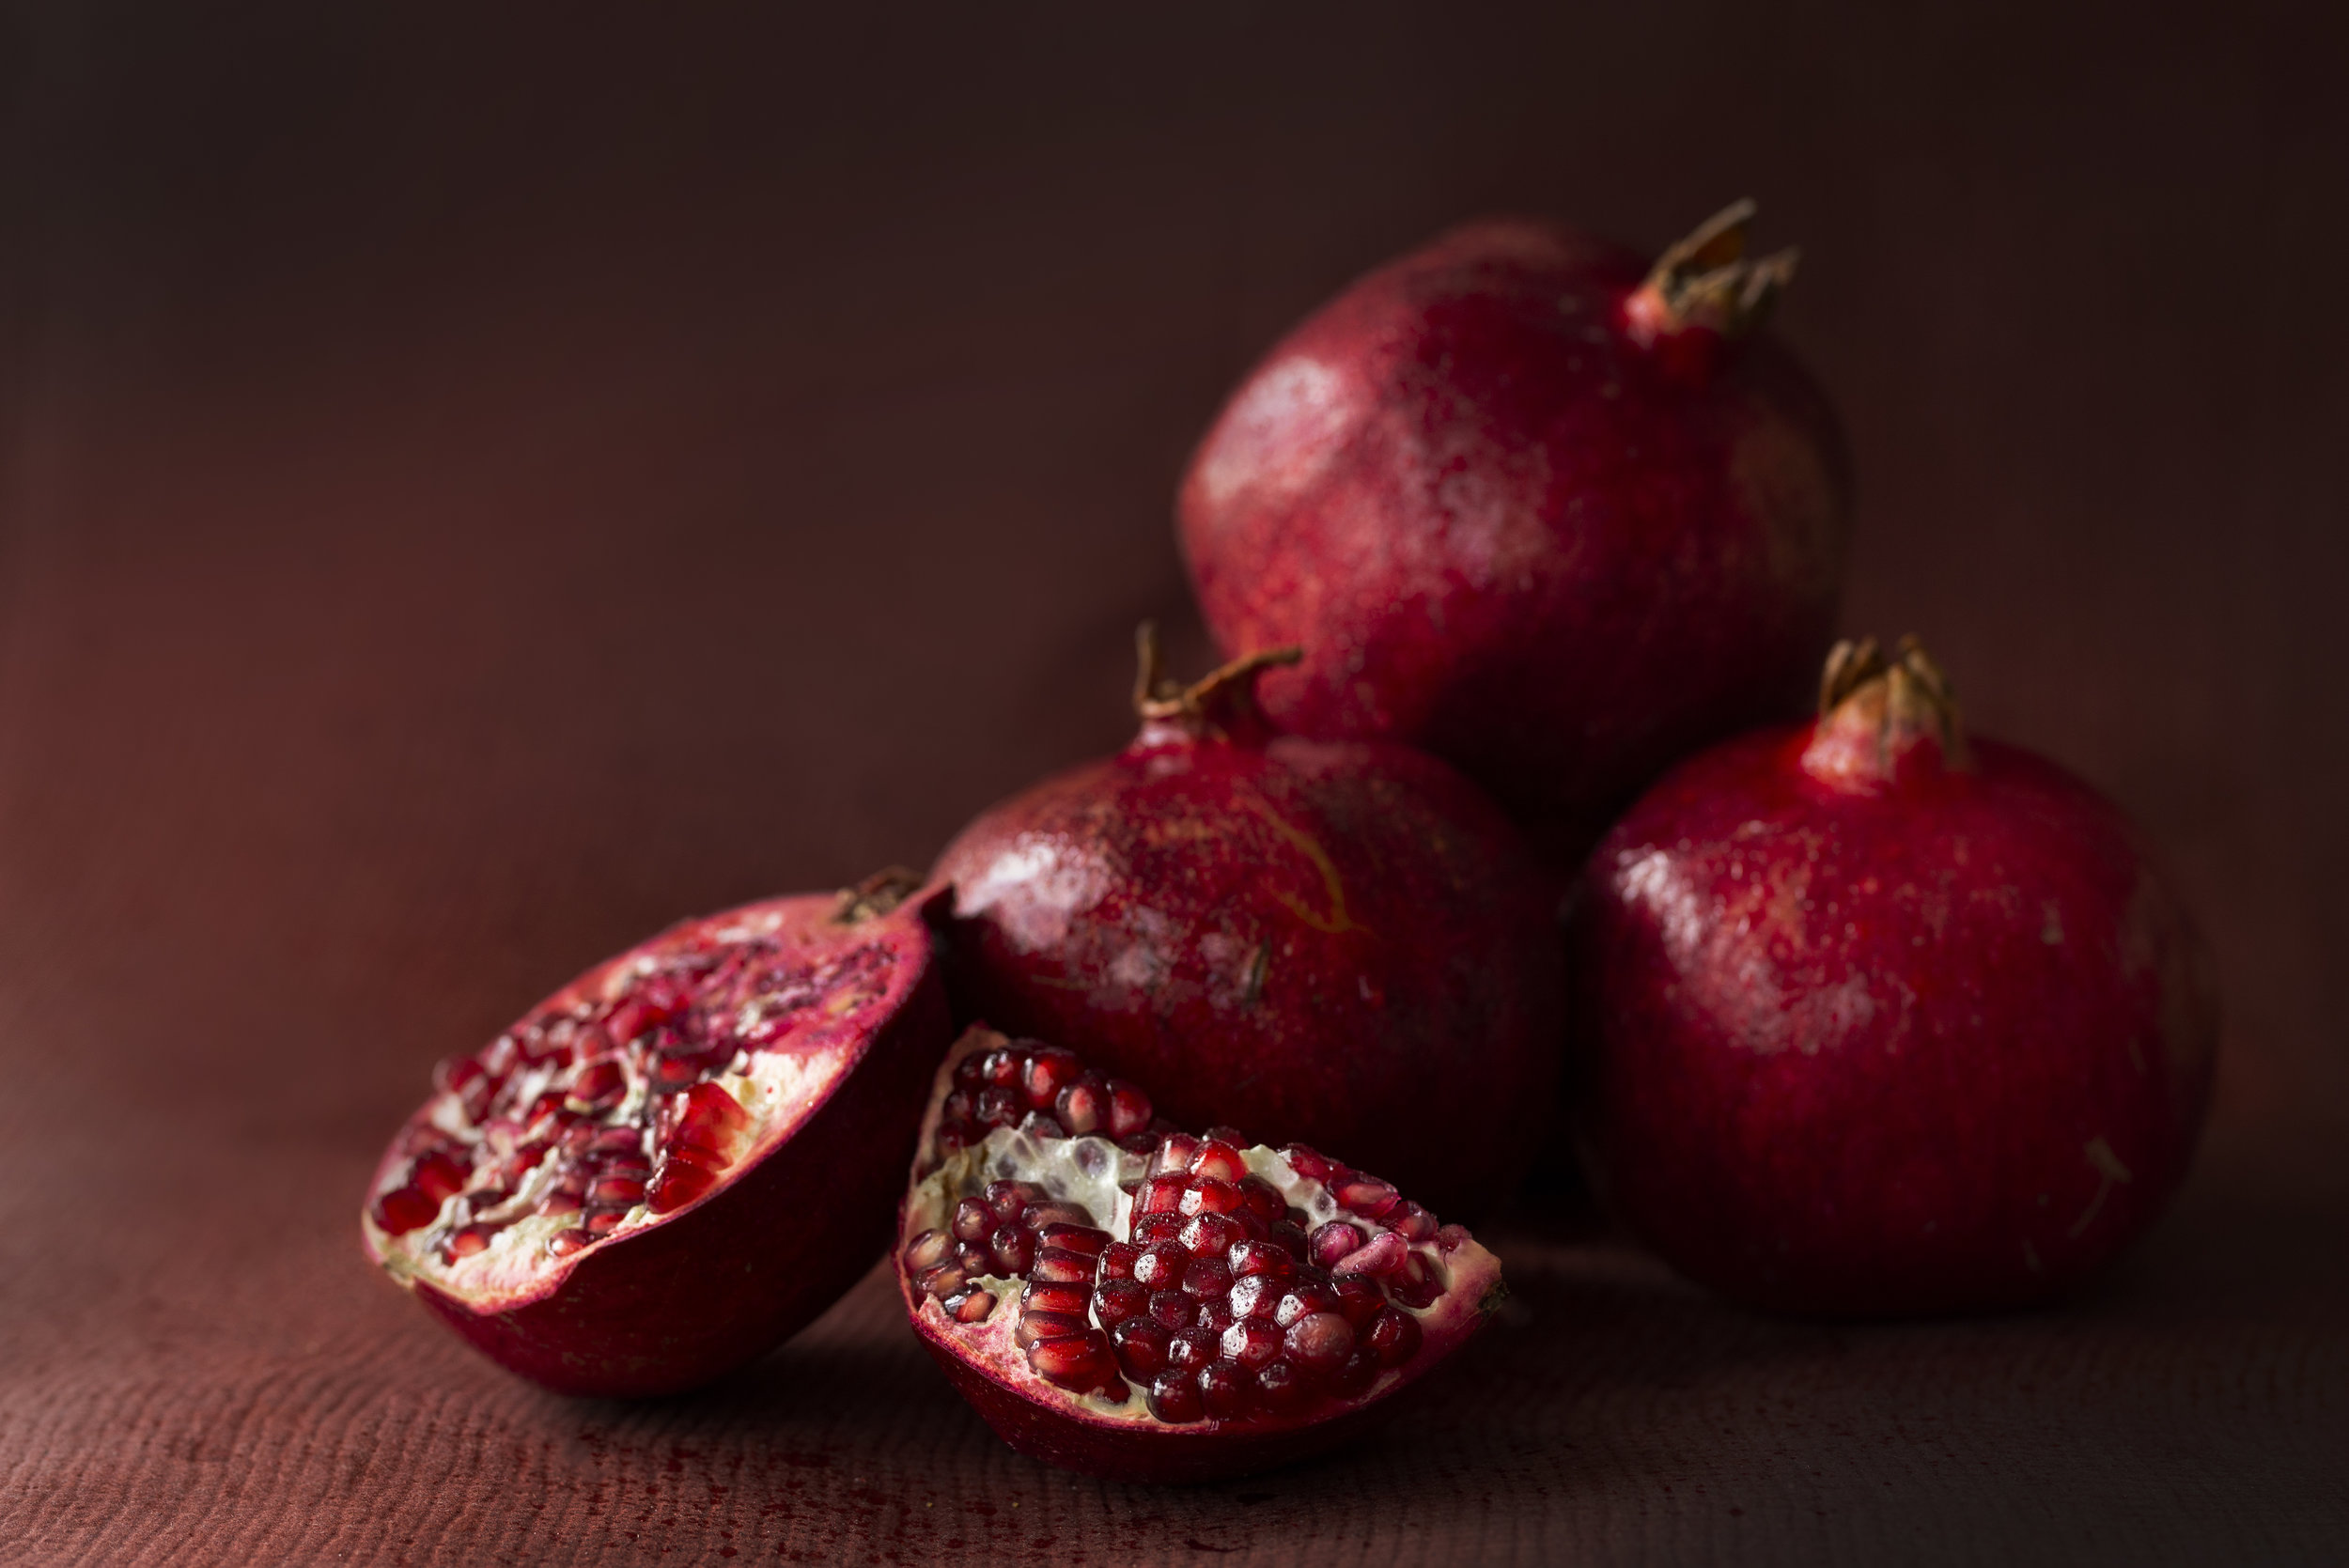 PomegranateStillLife-HR-SimiJois-2018.jpg